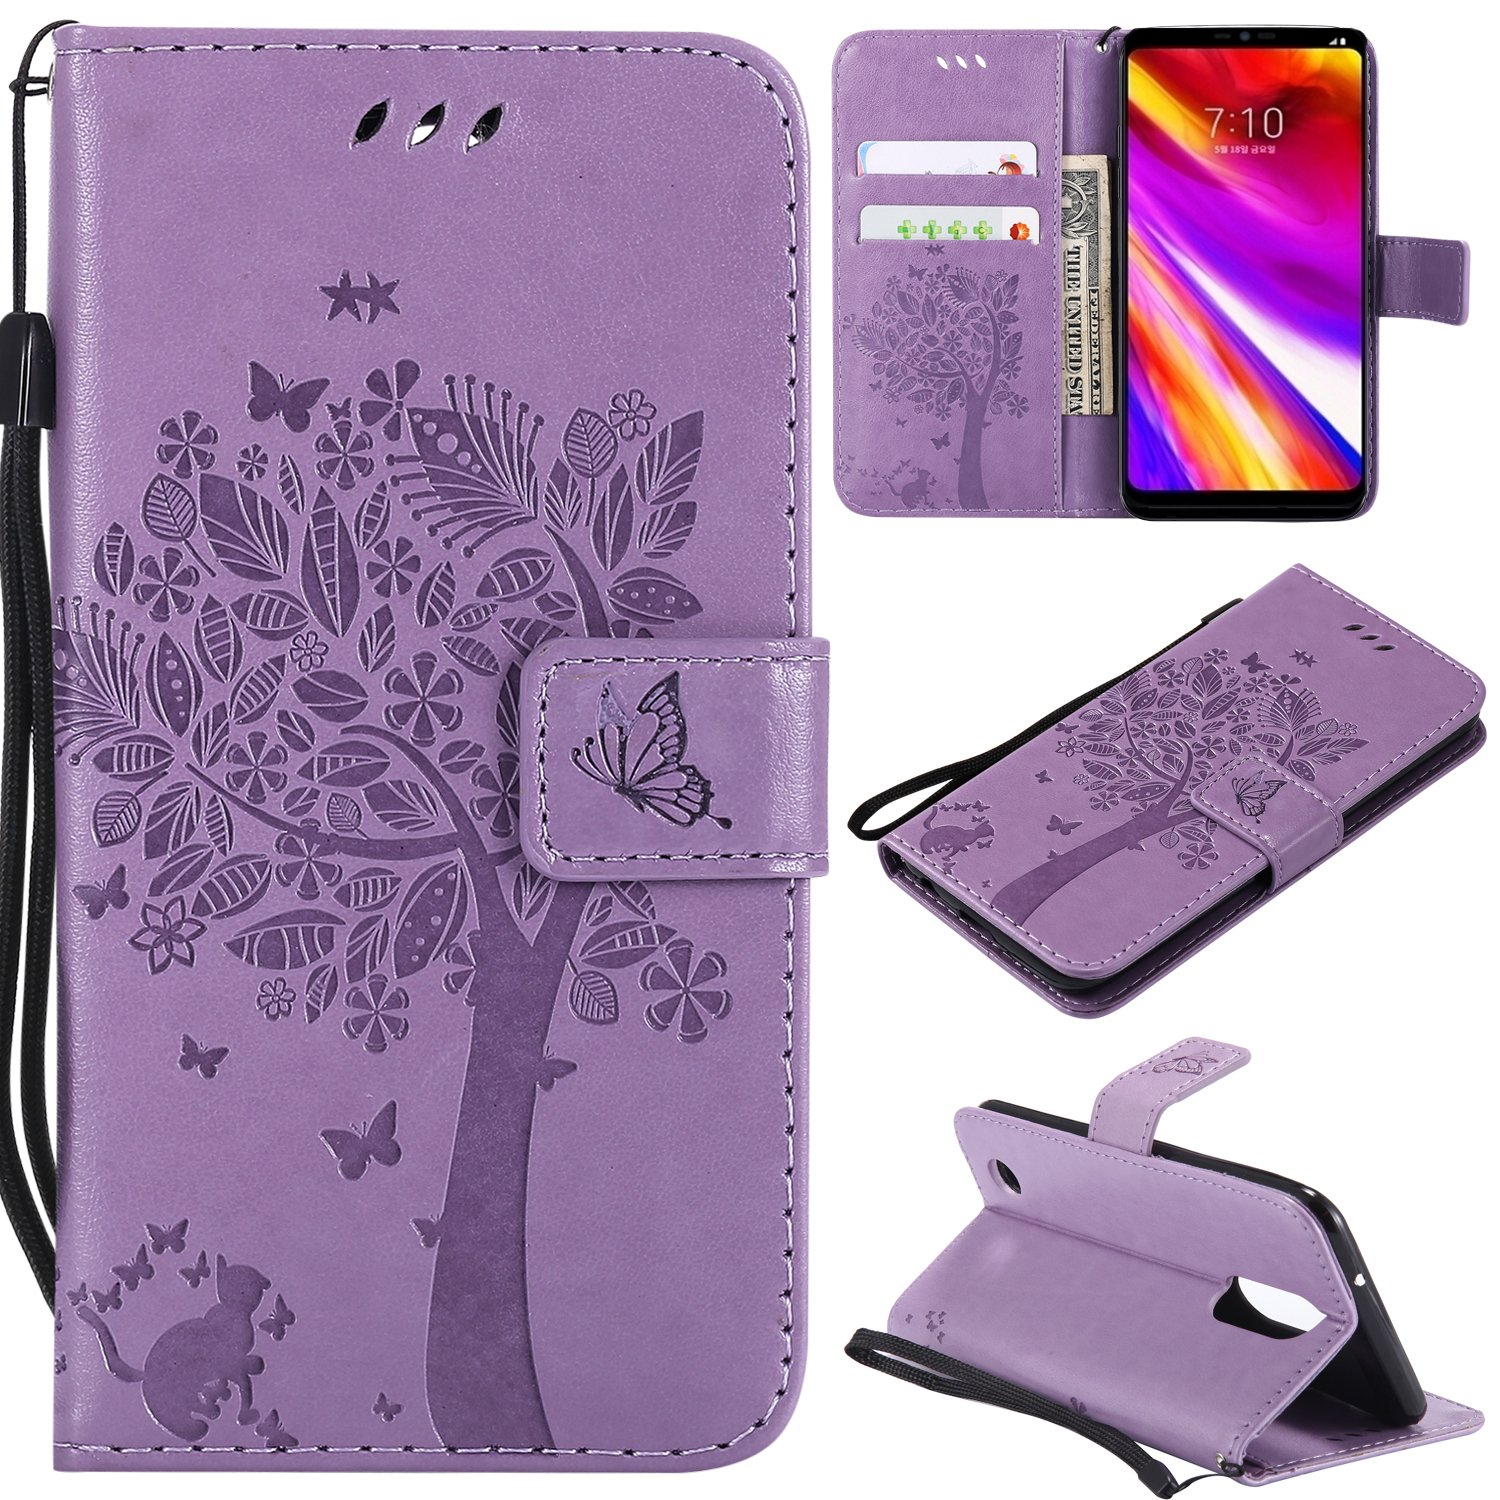 LG Aristo Case, LG Phoenix 3 Wallet Case,LG Fortune/K8 2017/LG Risio 2/LG Rebel 2 LTE Flip Case PU Leather Emboss Tree Cat Flower Folio Magnetic Kickstand Cover with Card Slots for LG LV3 Light Purple by NOMO (Image #1)